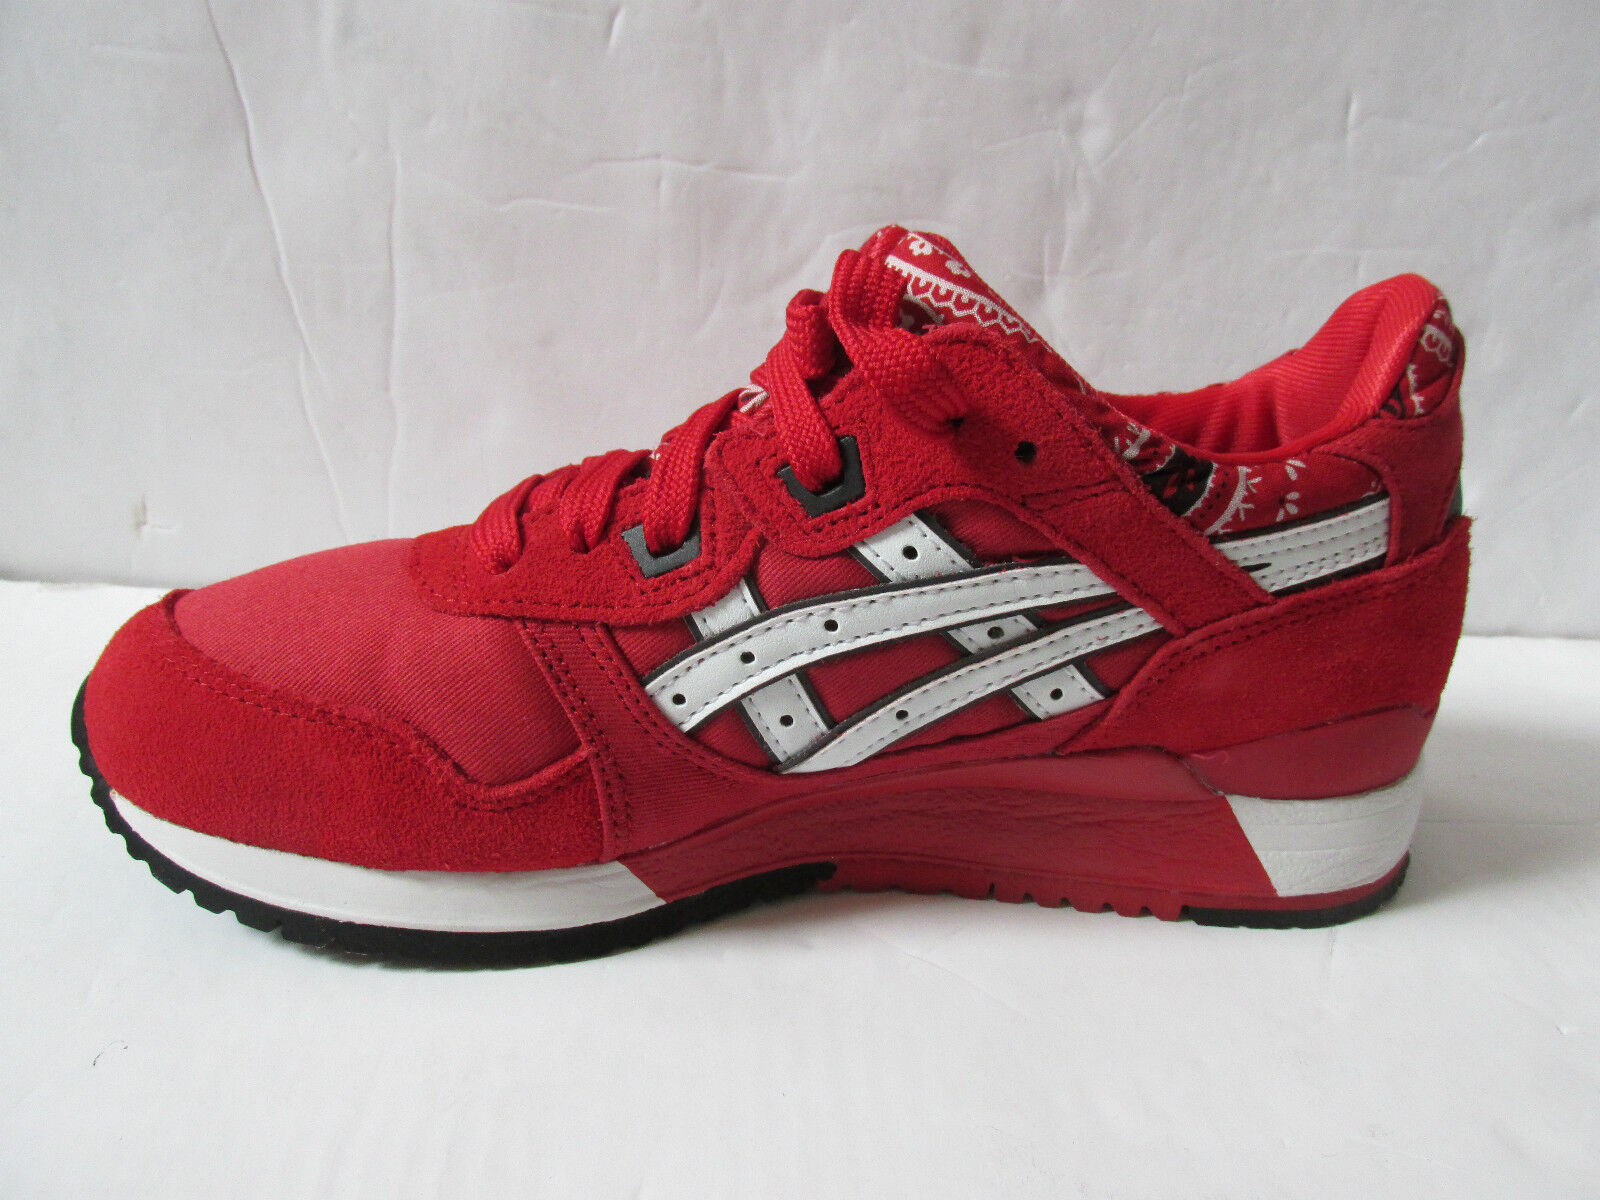 Asics Gel-Lyte Iii Chaussures Unisexe Baskets H424N 2301 Basket Chaussures Iii 35f512